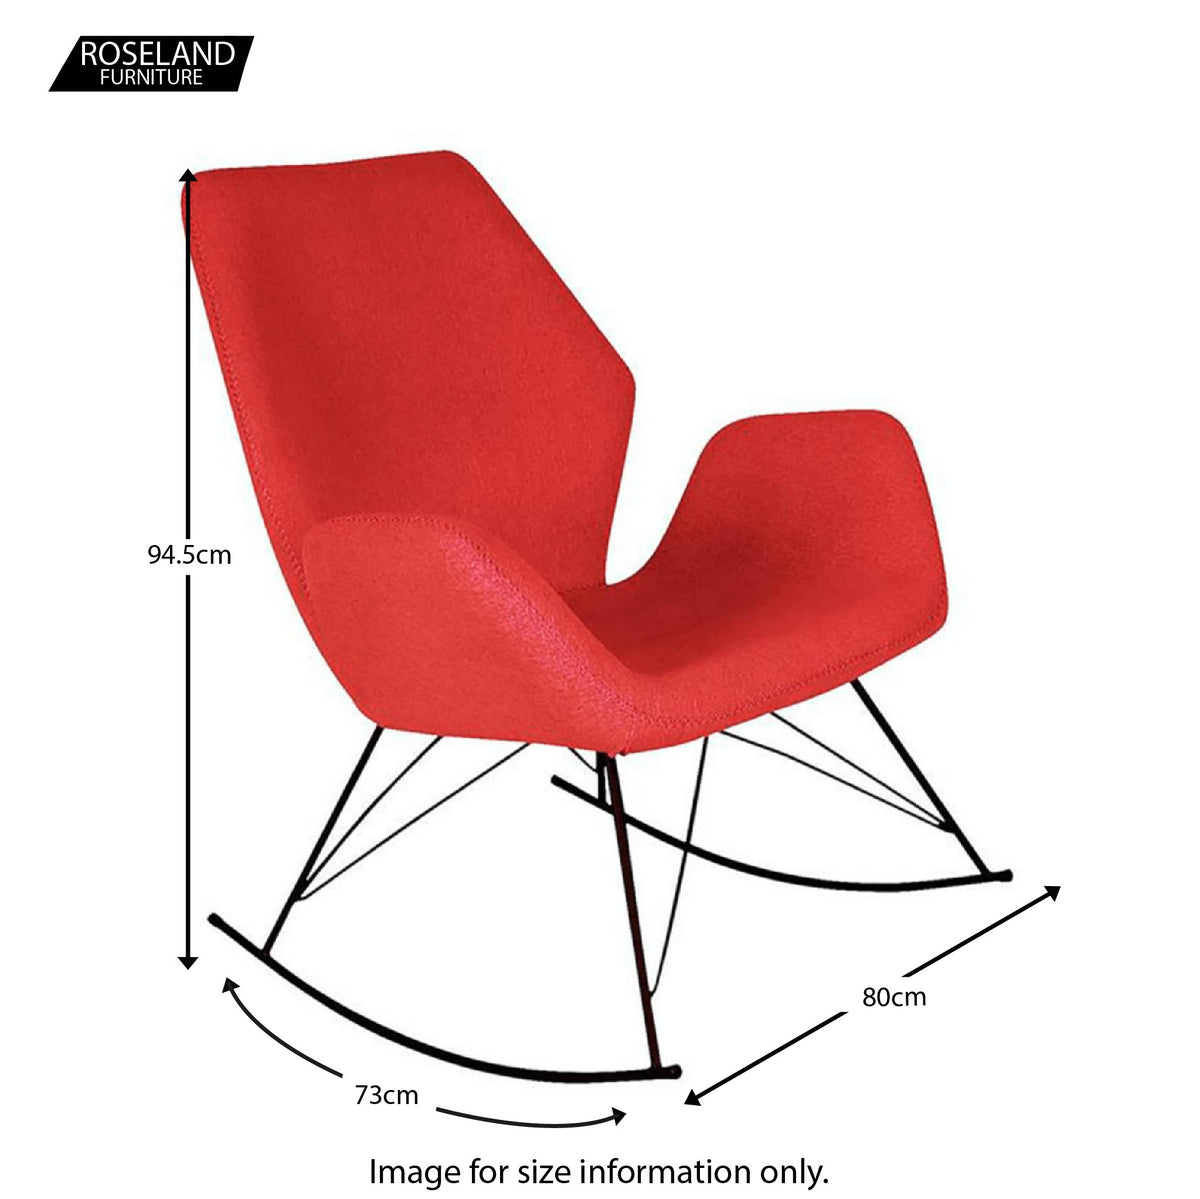 Bryce Red Rocking Chair - Size Guide